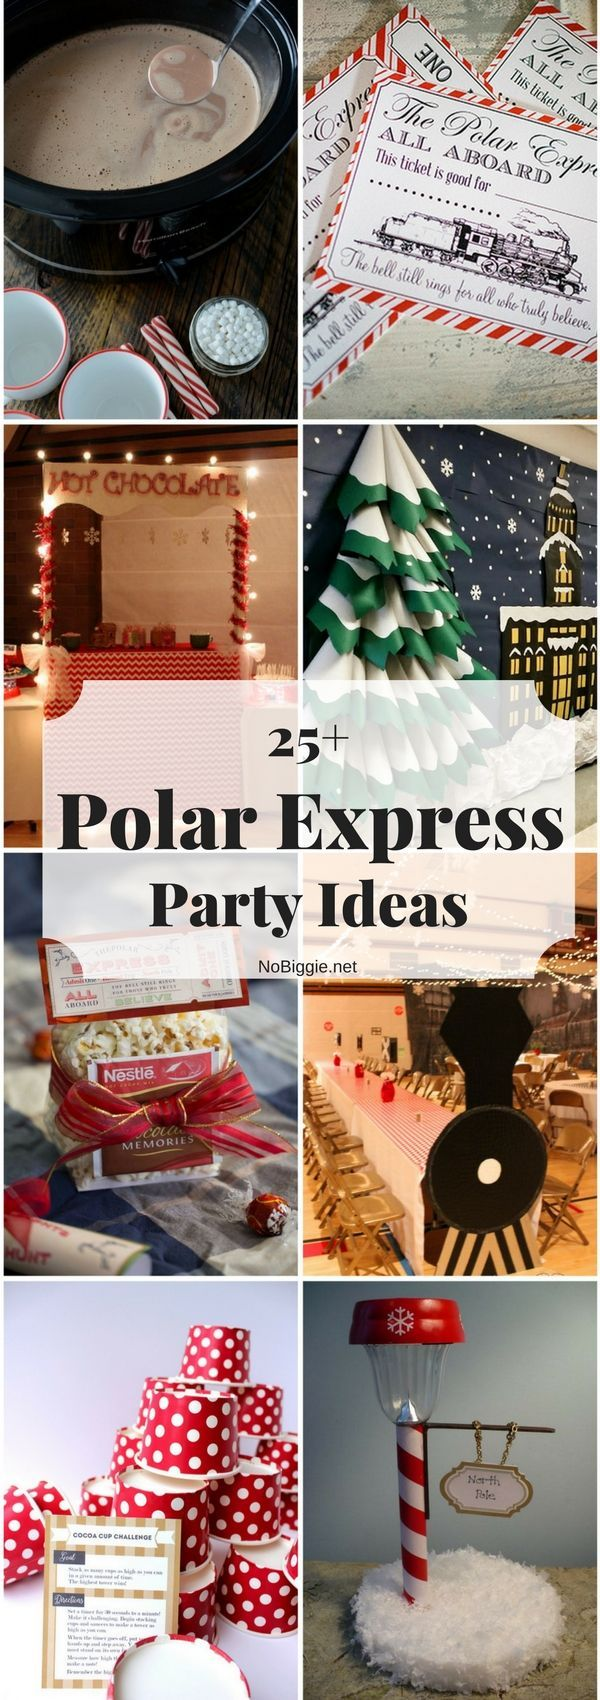 25+ Polar Express Party Ideas | NoBiggie.net